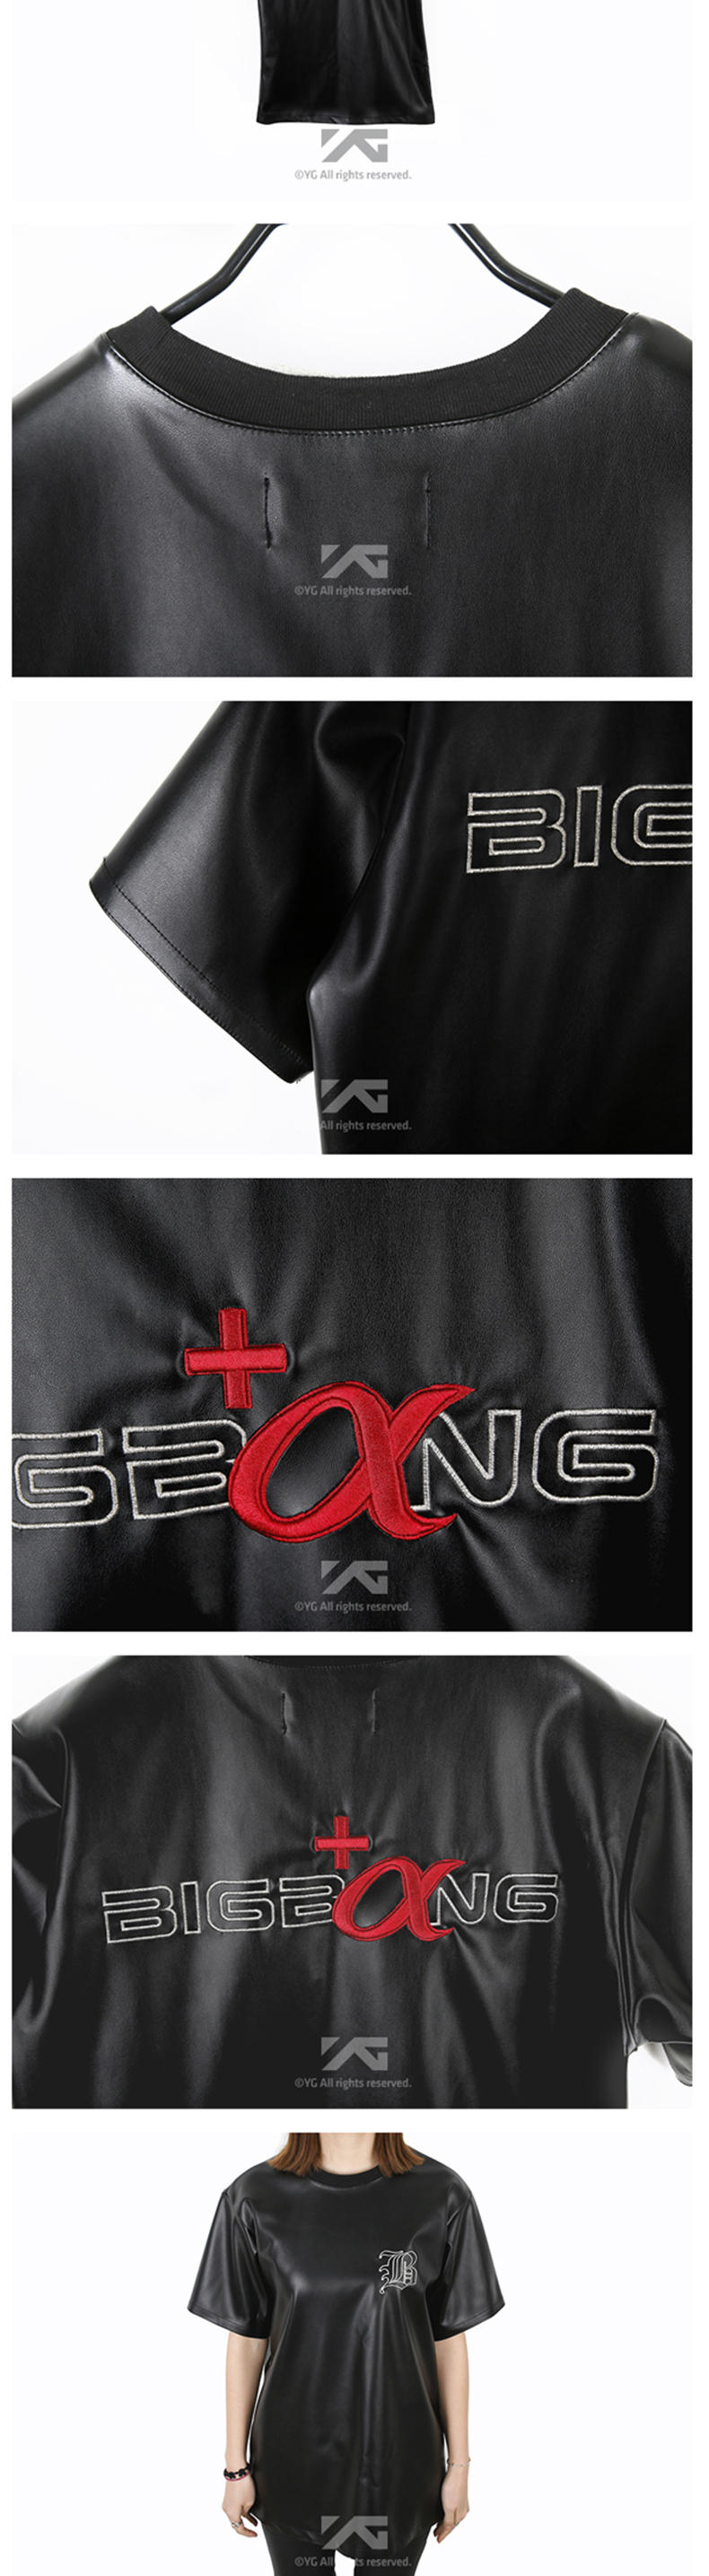 Simili tổng hợp YGESHOP BIGBANG + alpha synthetic leather short sleeve T-shirt